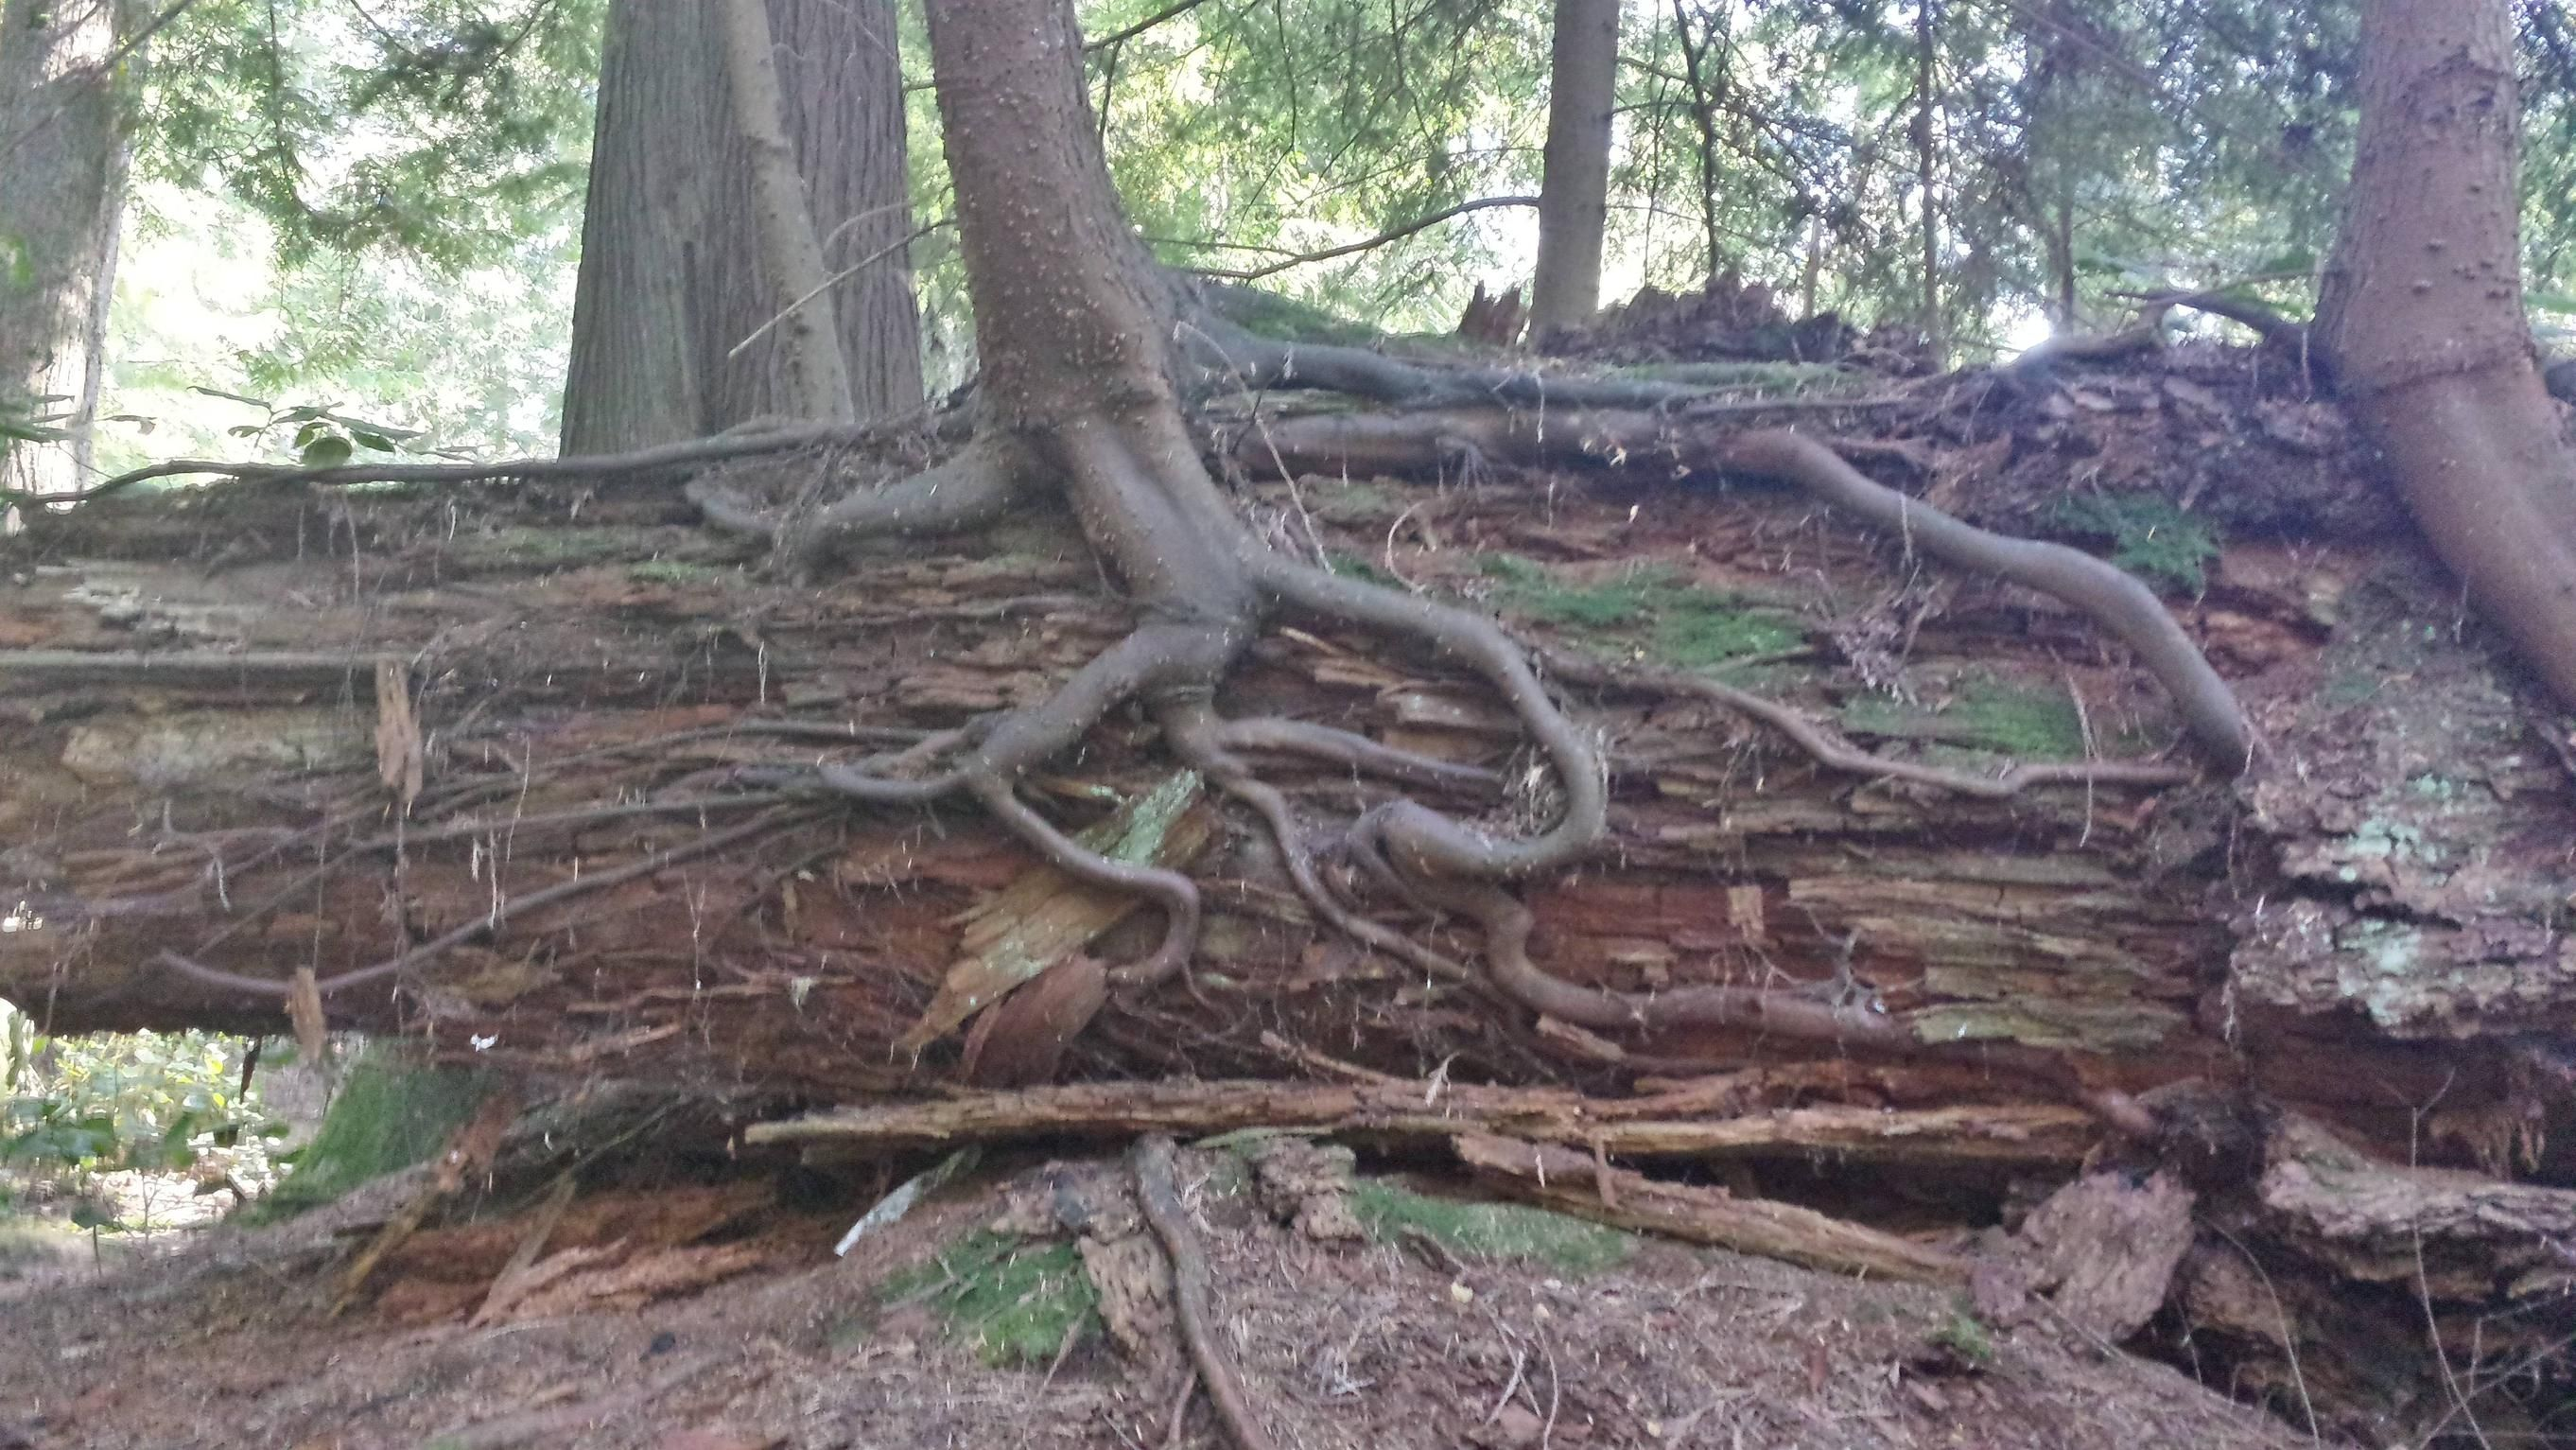 A trees root system seen growing through a dead tree - Imgur